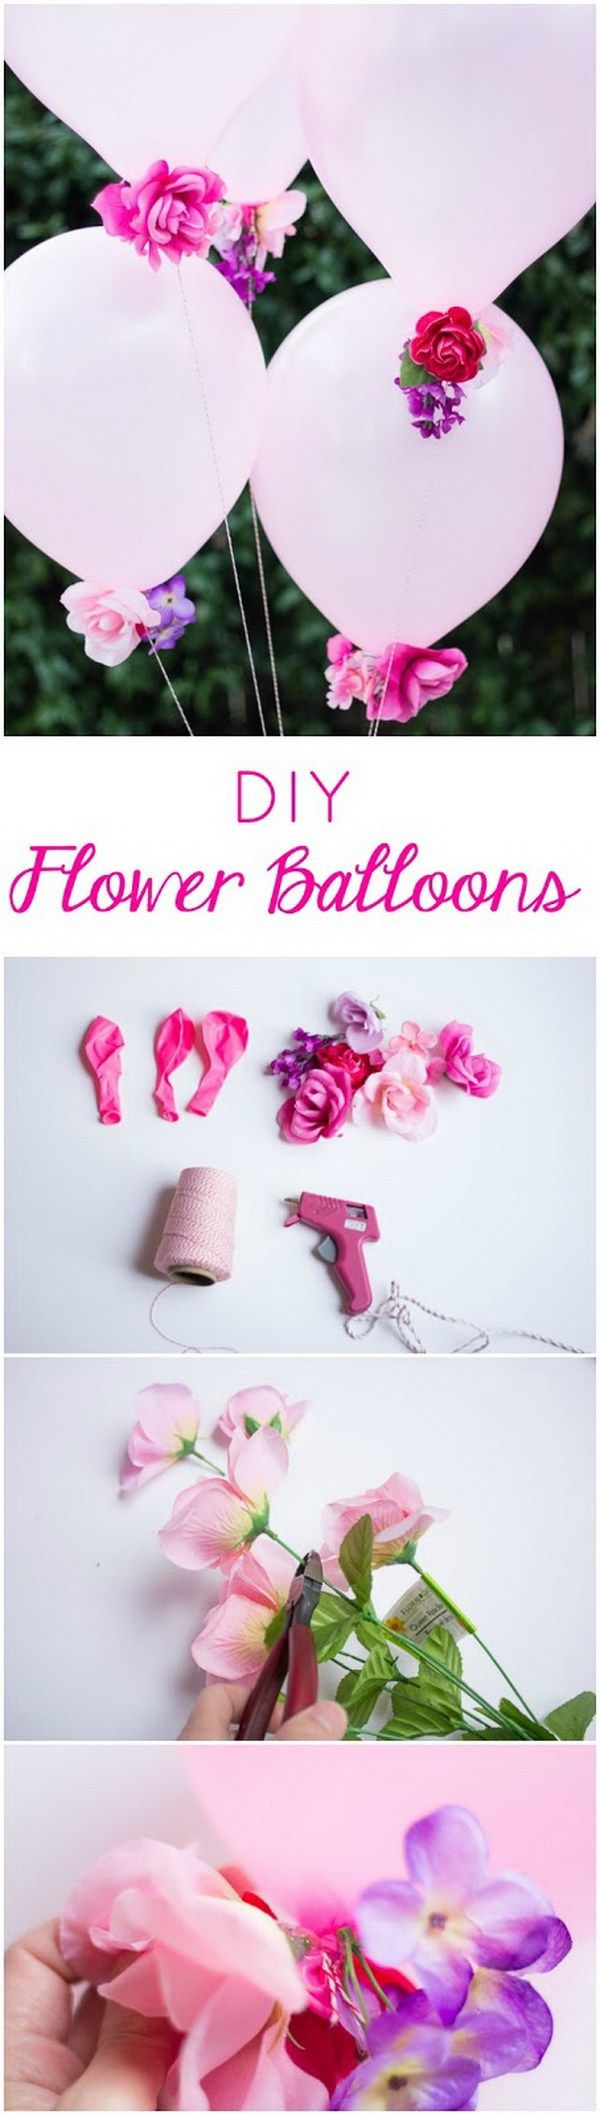 DIY Flower Balloons. Ptretty balloon decoration ideas.